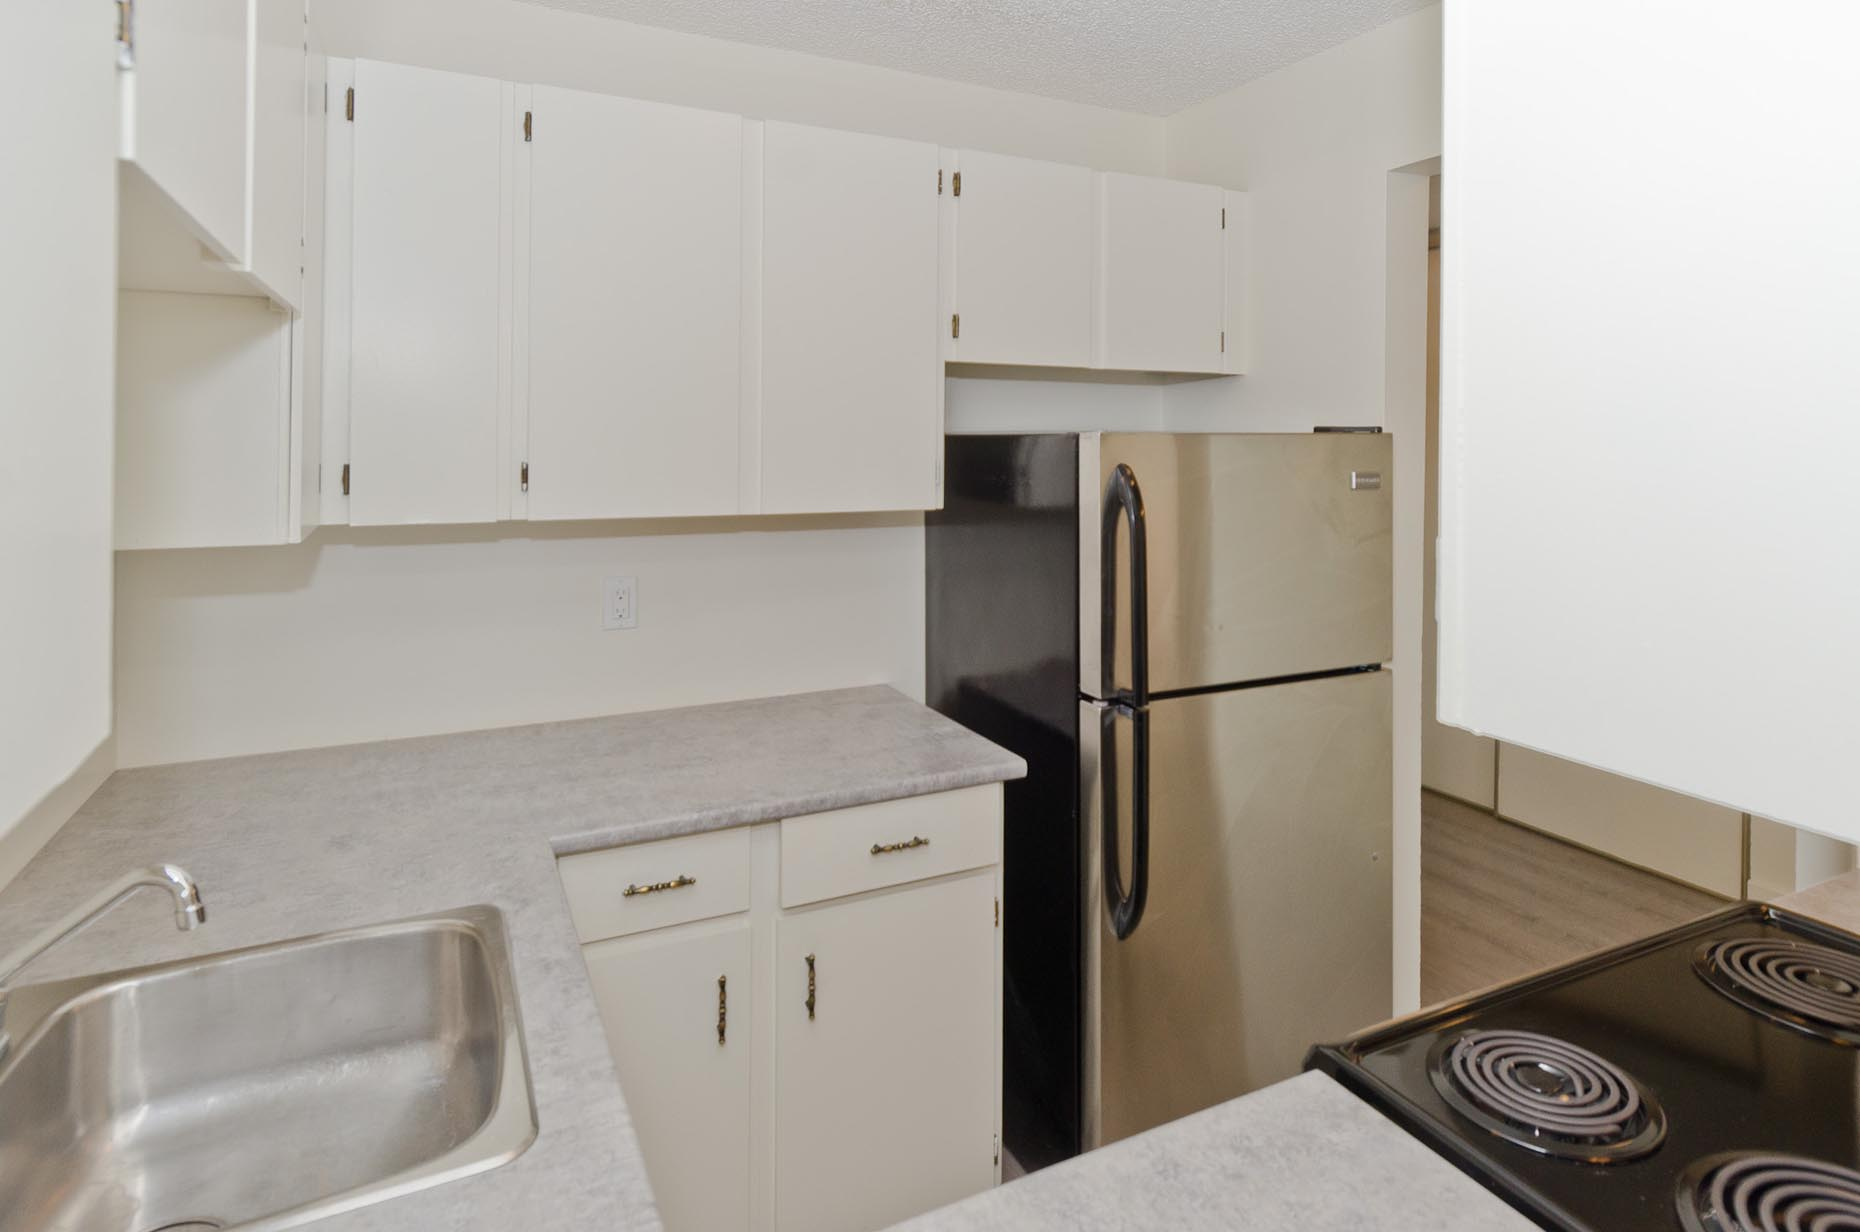 Premium Kitchen in Pineridge Aparments